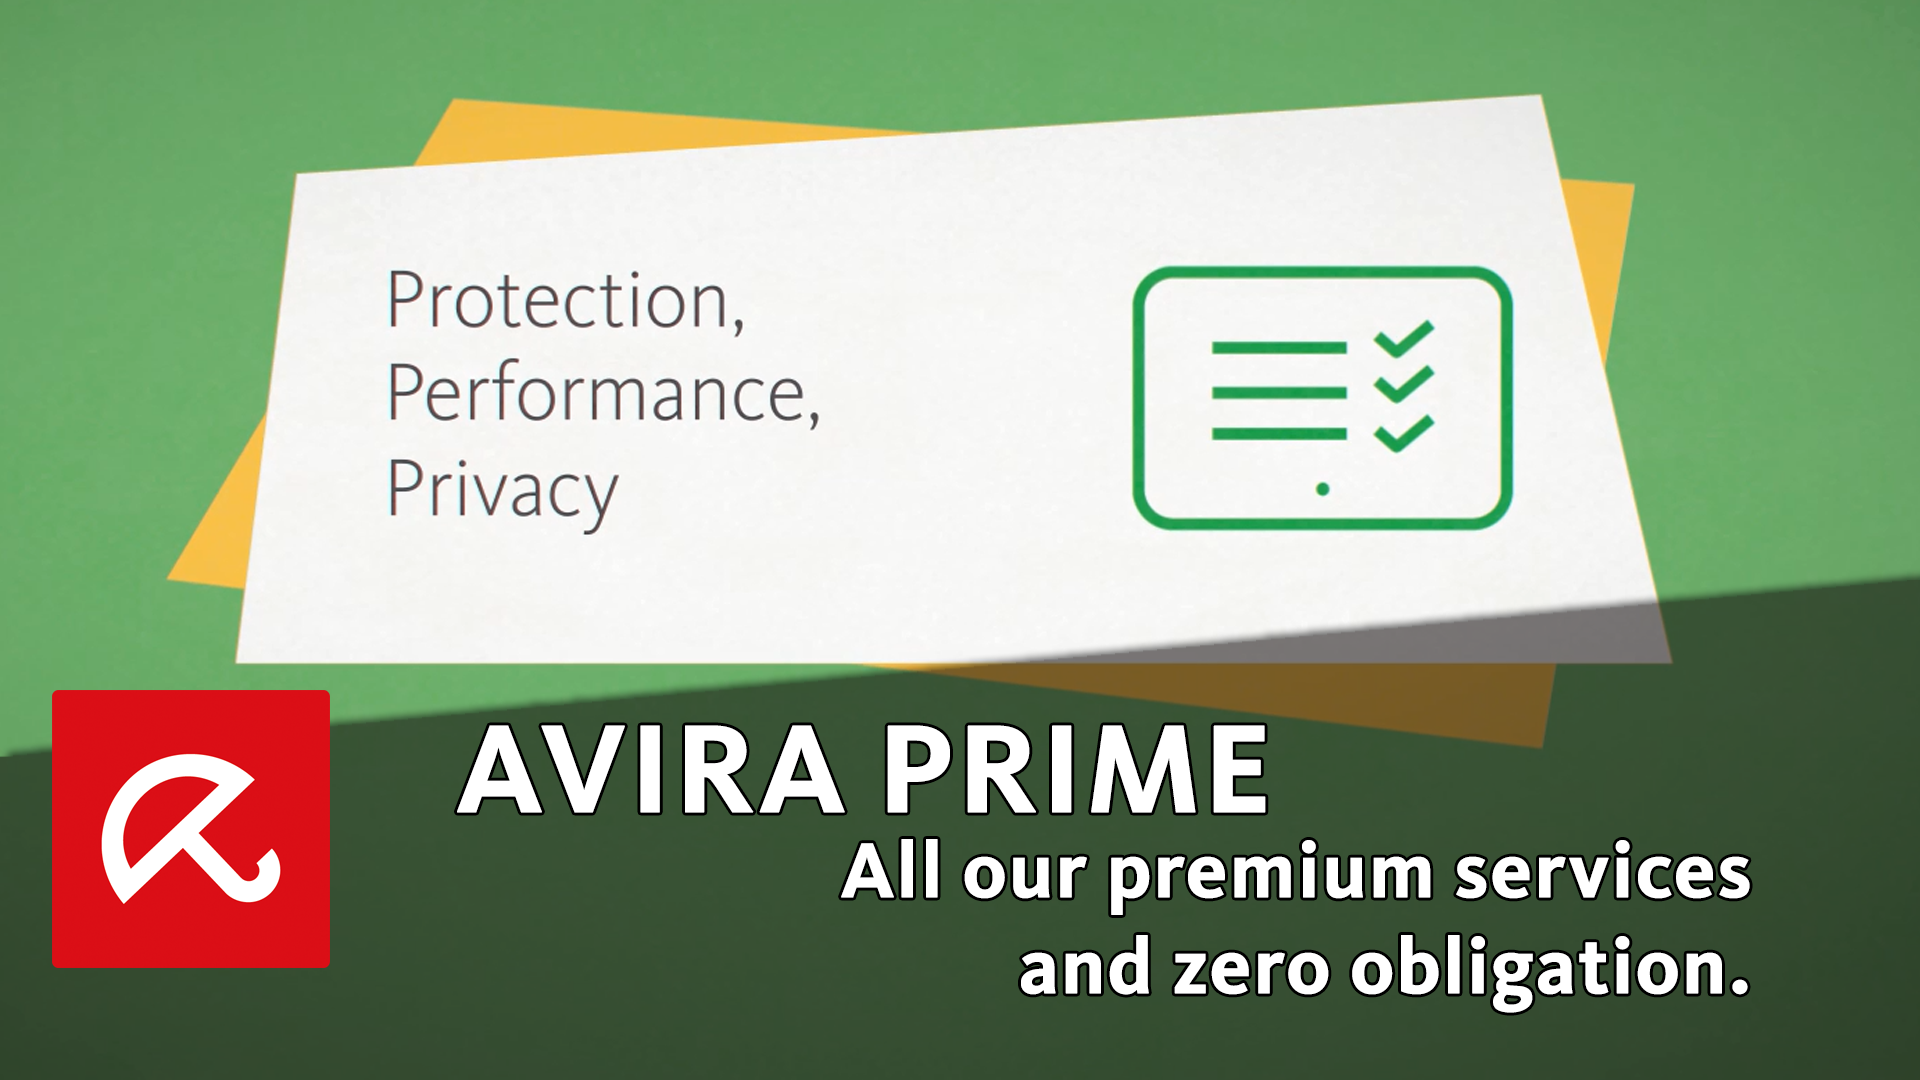 Video: Avira goes Prime time with its new all-in-one premium subscription service - Avira Blog